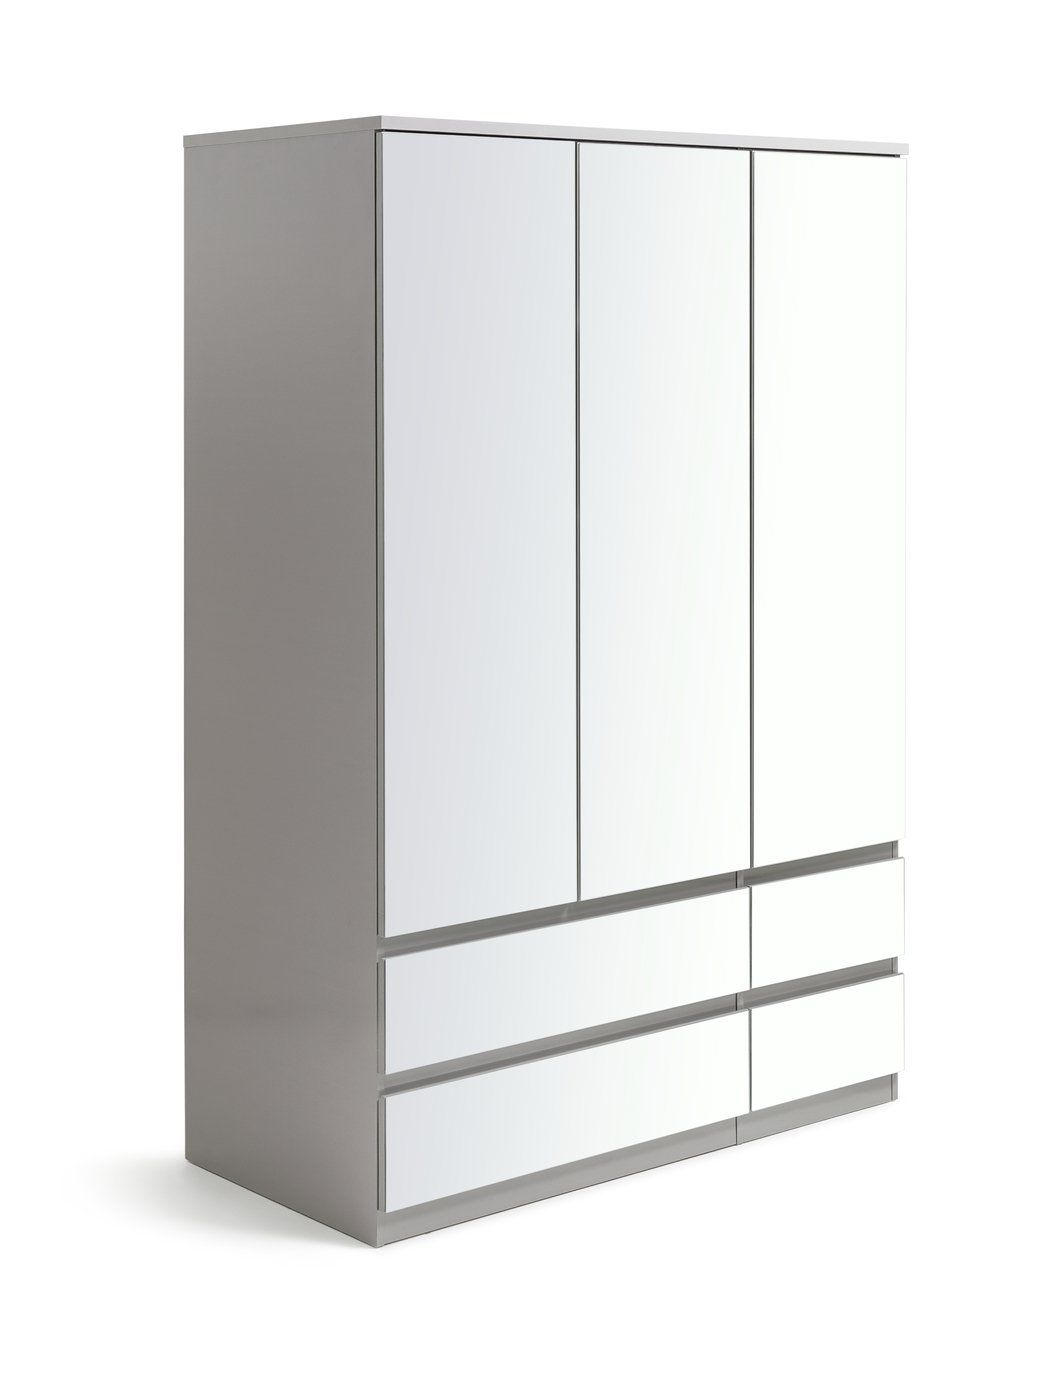 Argos Home Jenson 3 Door 4 Drawer Mirrored Wardrobe